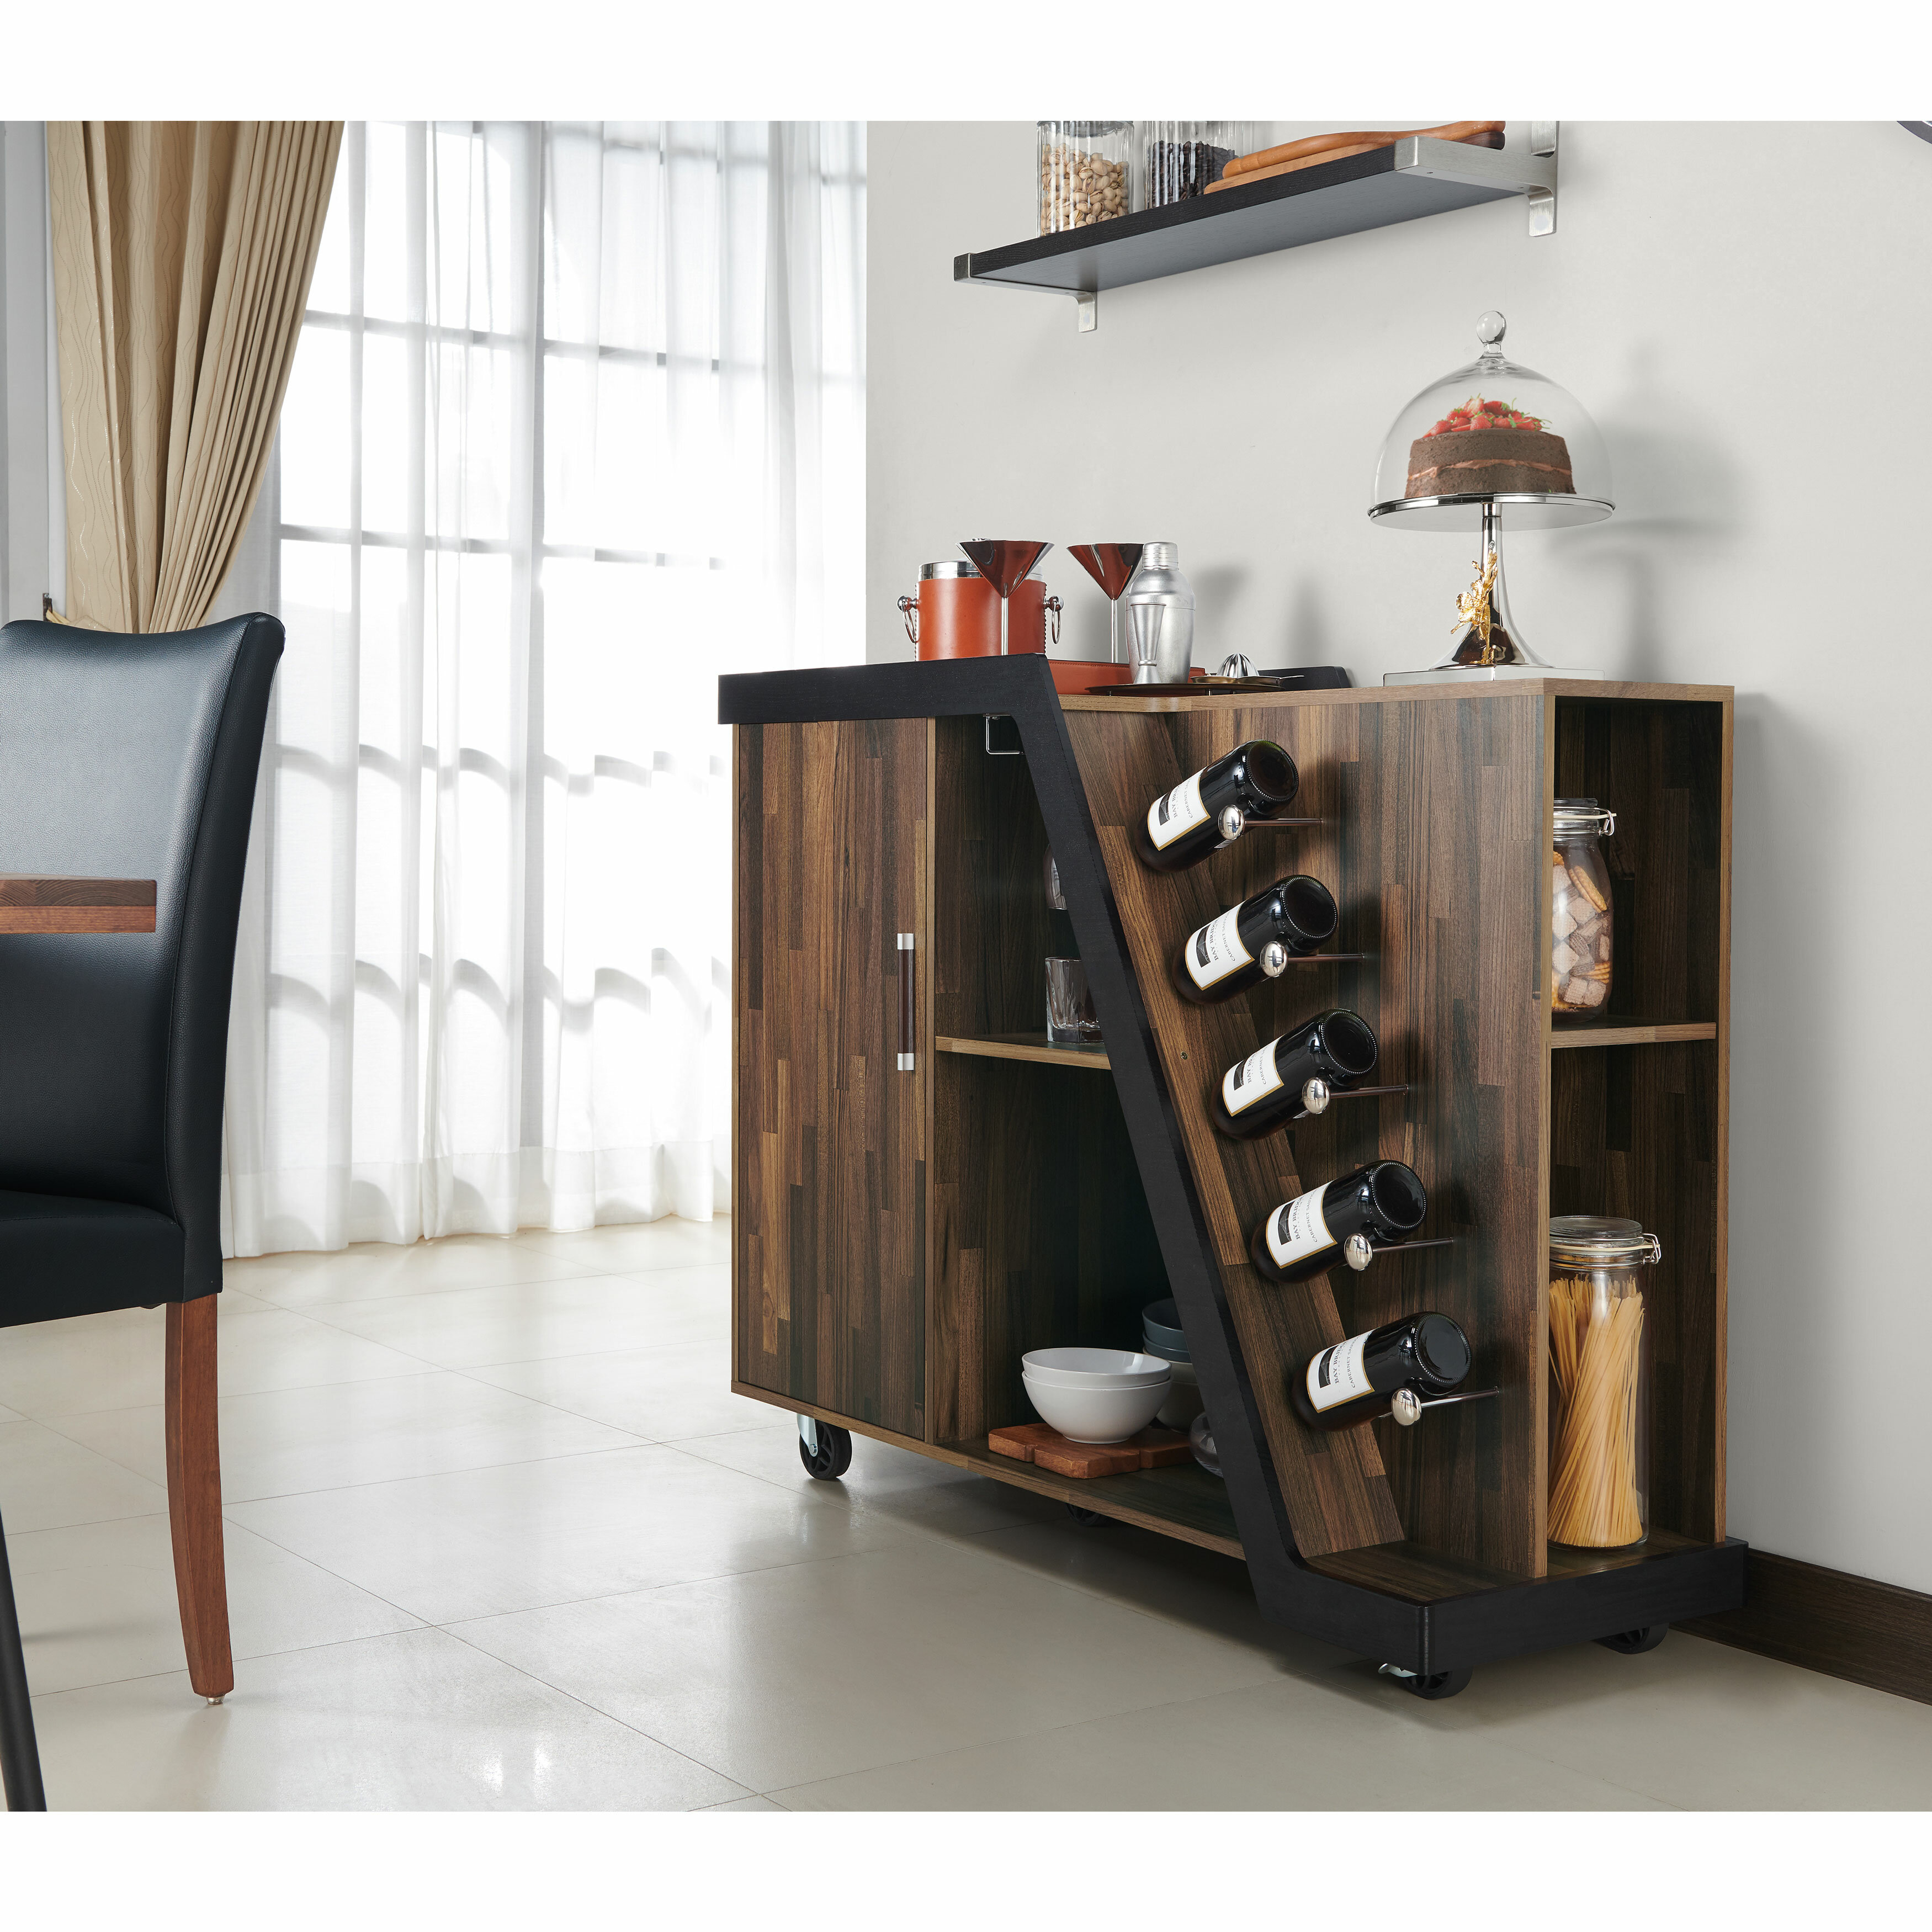 Brayden Studio Simonds Mobile Bar With Wine Storage Reviews